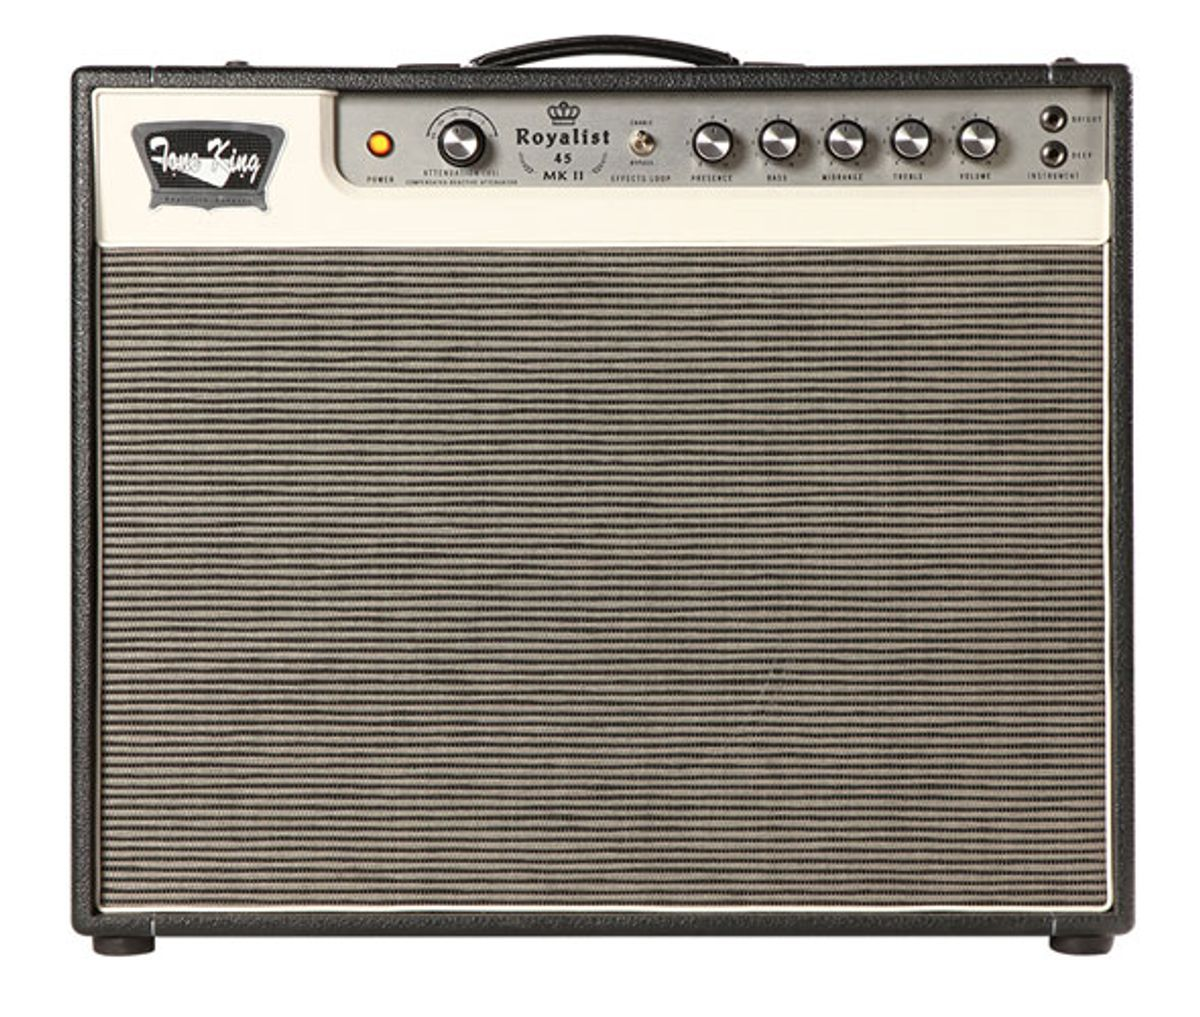 Tone King Amplification Releases the Royalist 45 Mk II and the Ironman II Mini Precision Reactive Power Attenuator